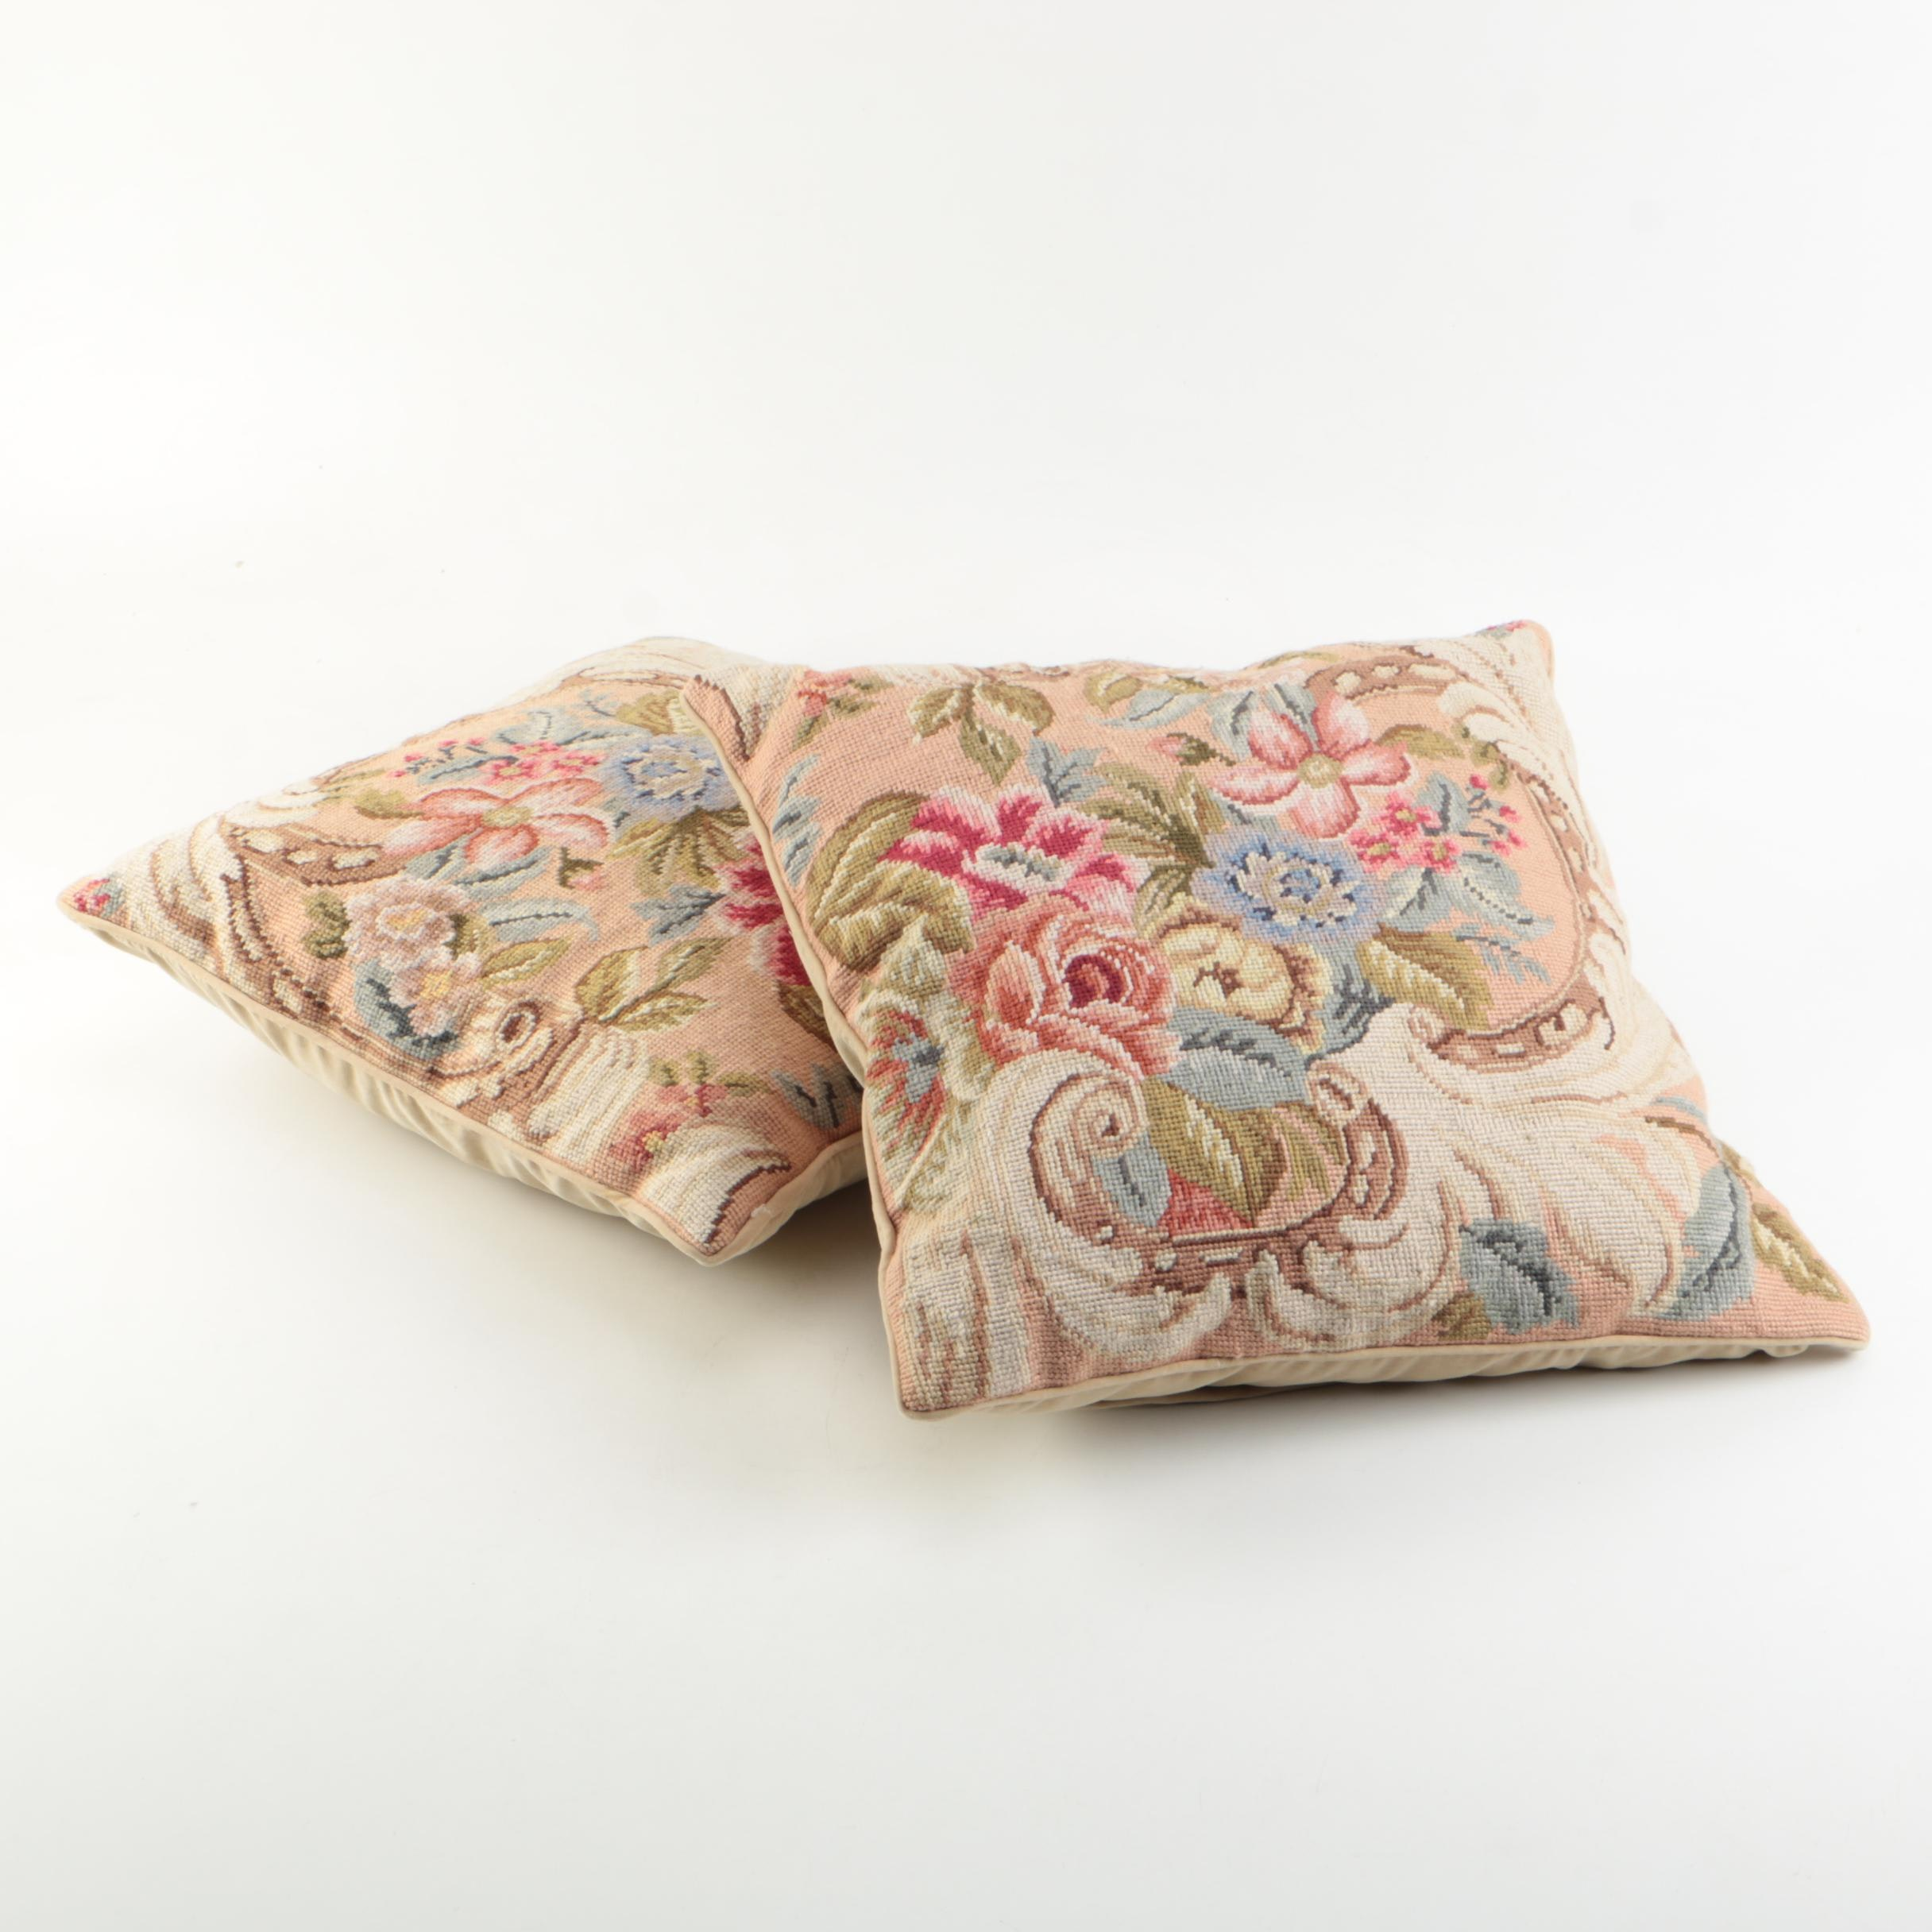 Floral Embroidered Throw Pillows